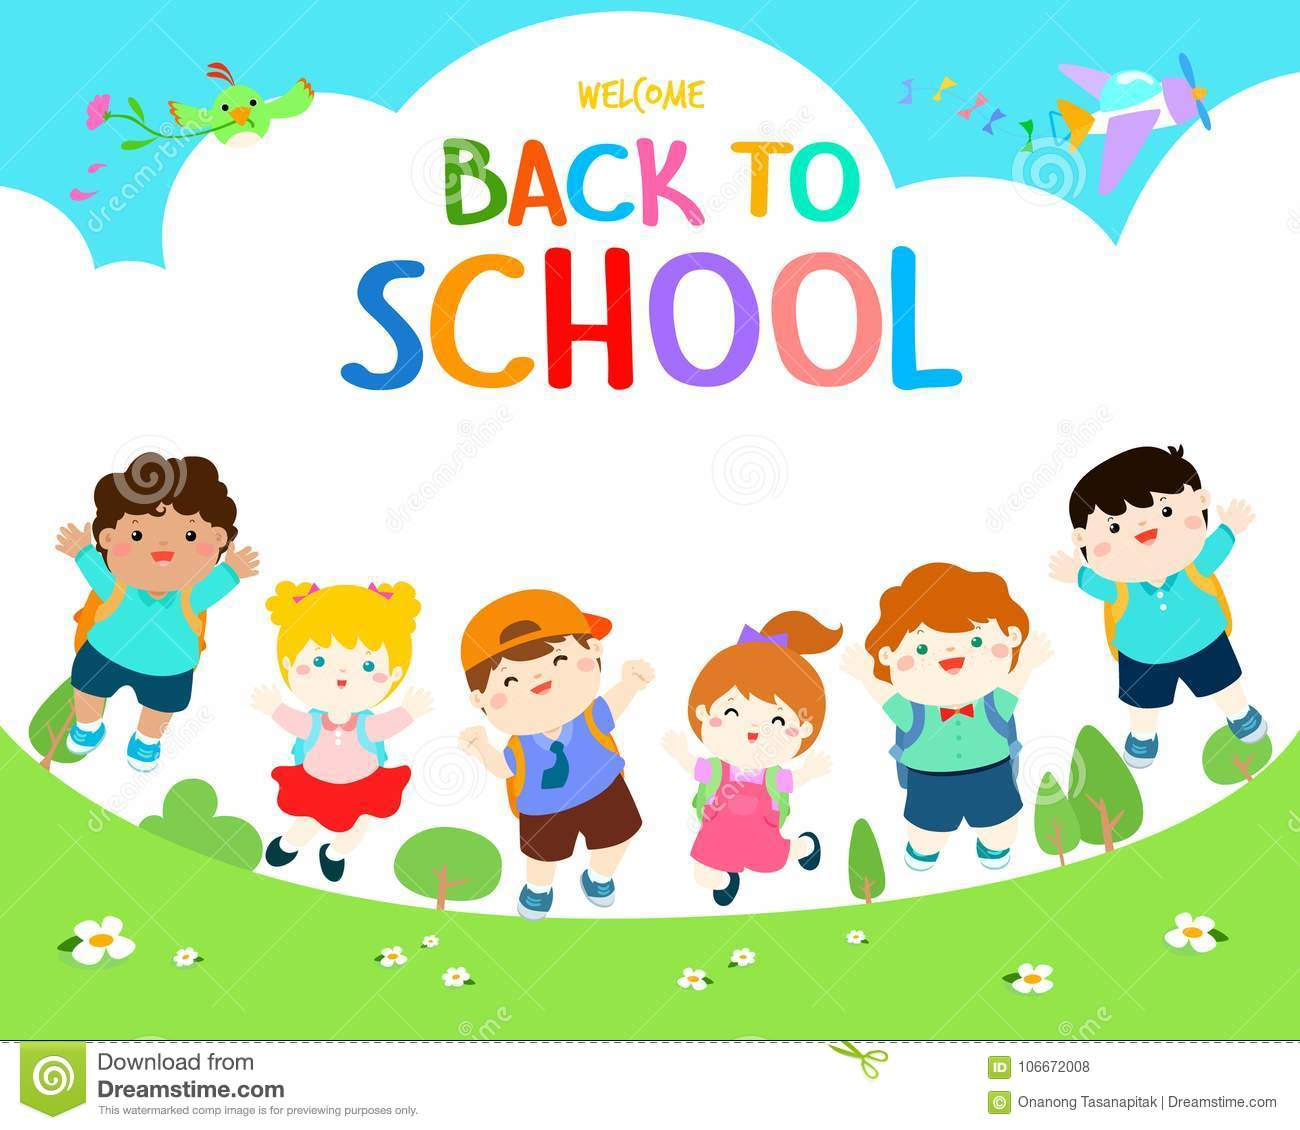 Welcome Back To School Illustration. Stock Vector.